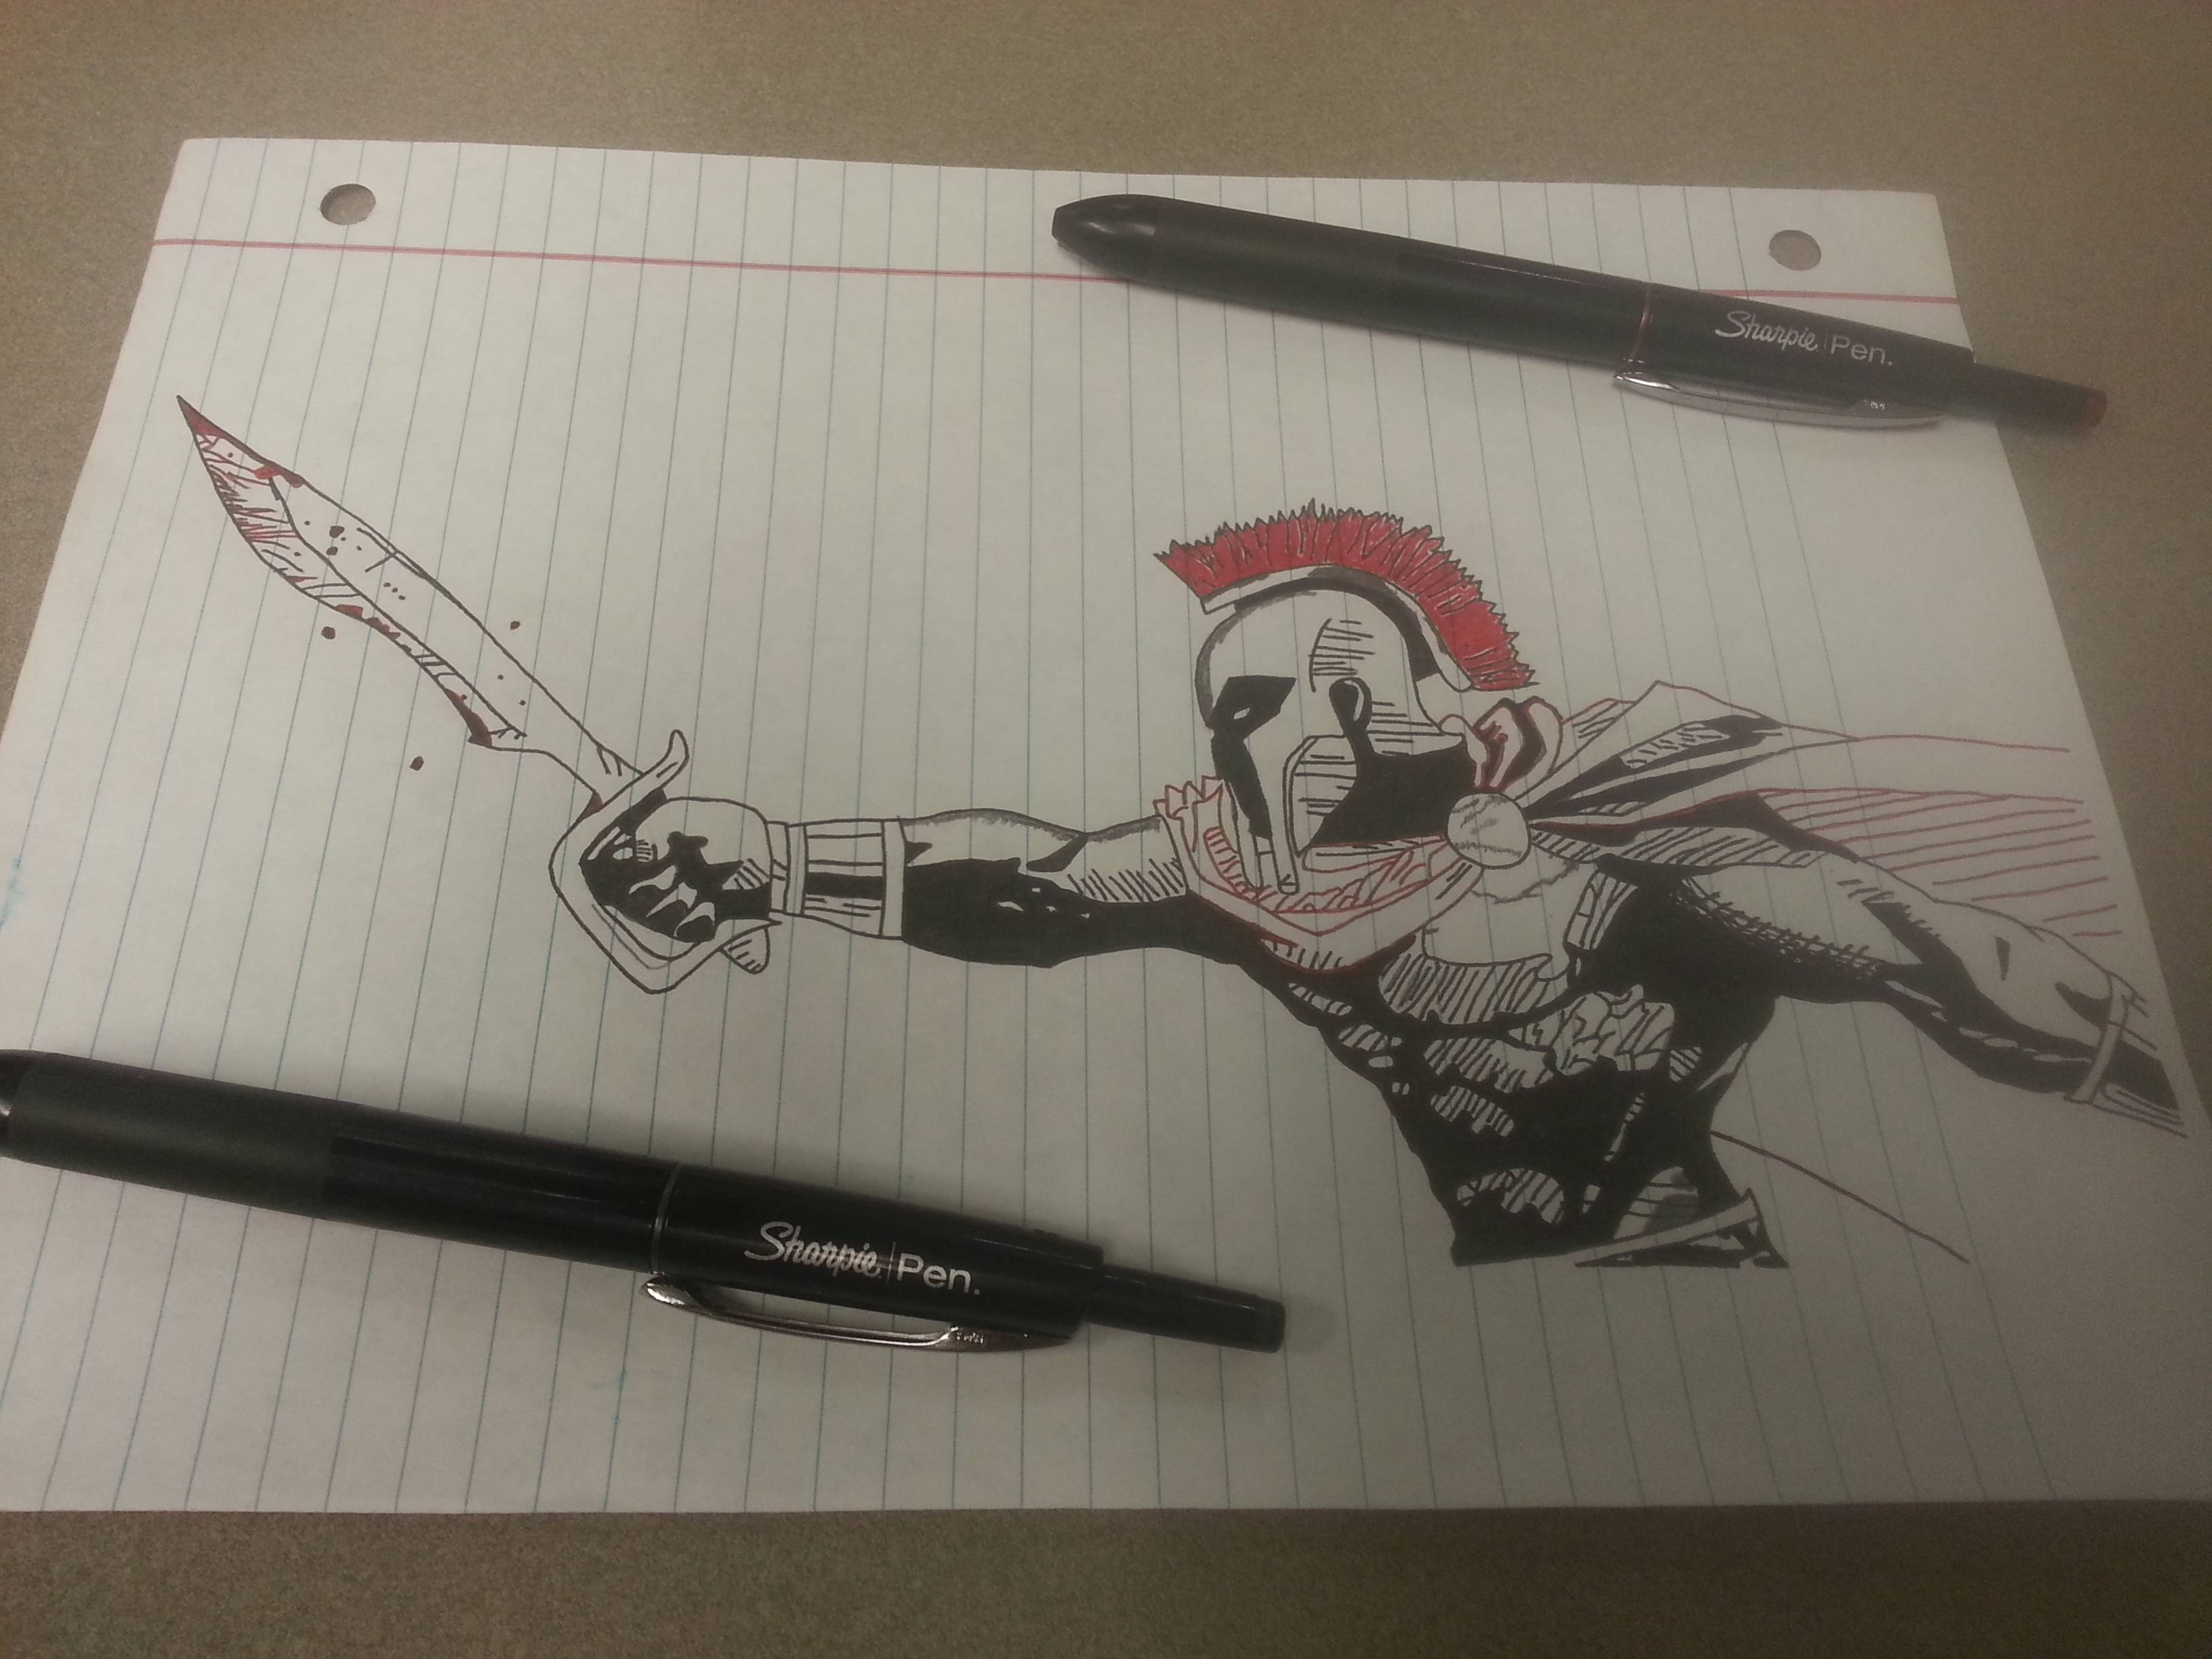 3264x2448 Watched The Movie 300 Again And Wanted To Draw A Spartan. Sorry If